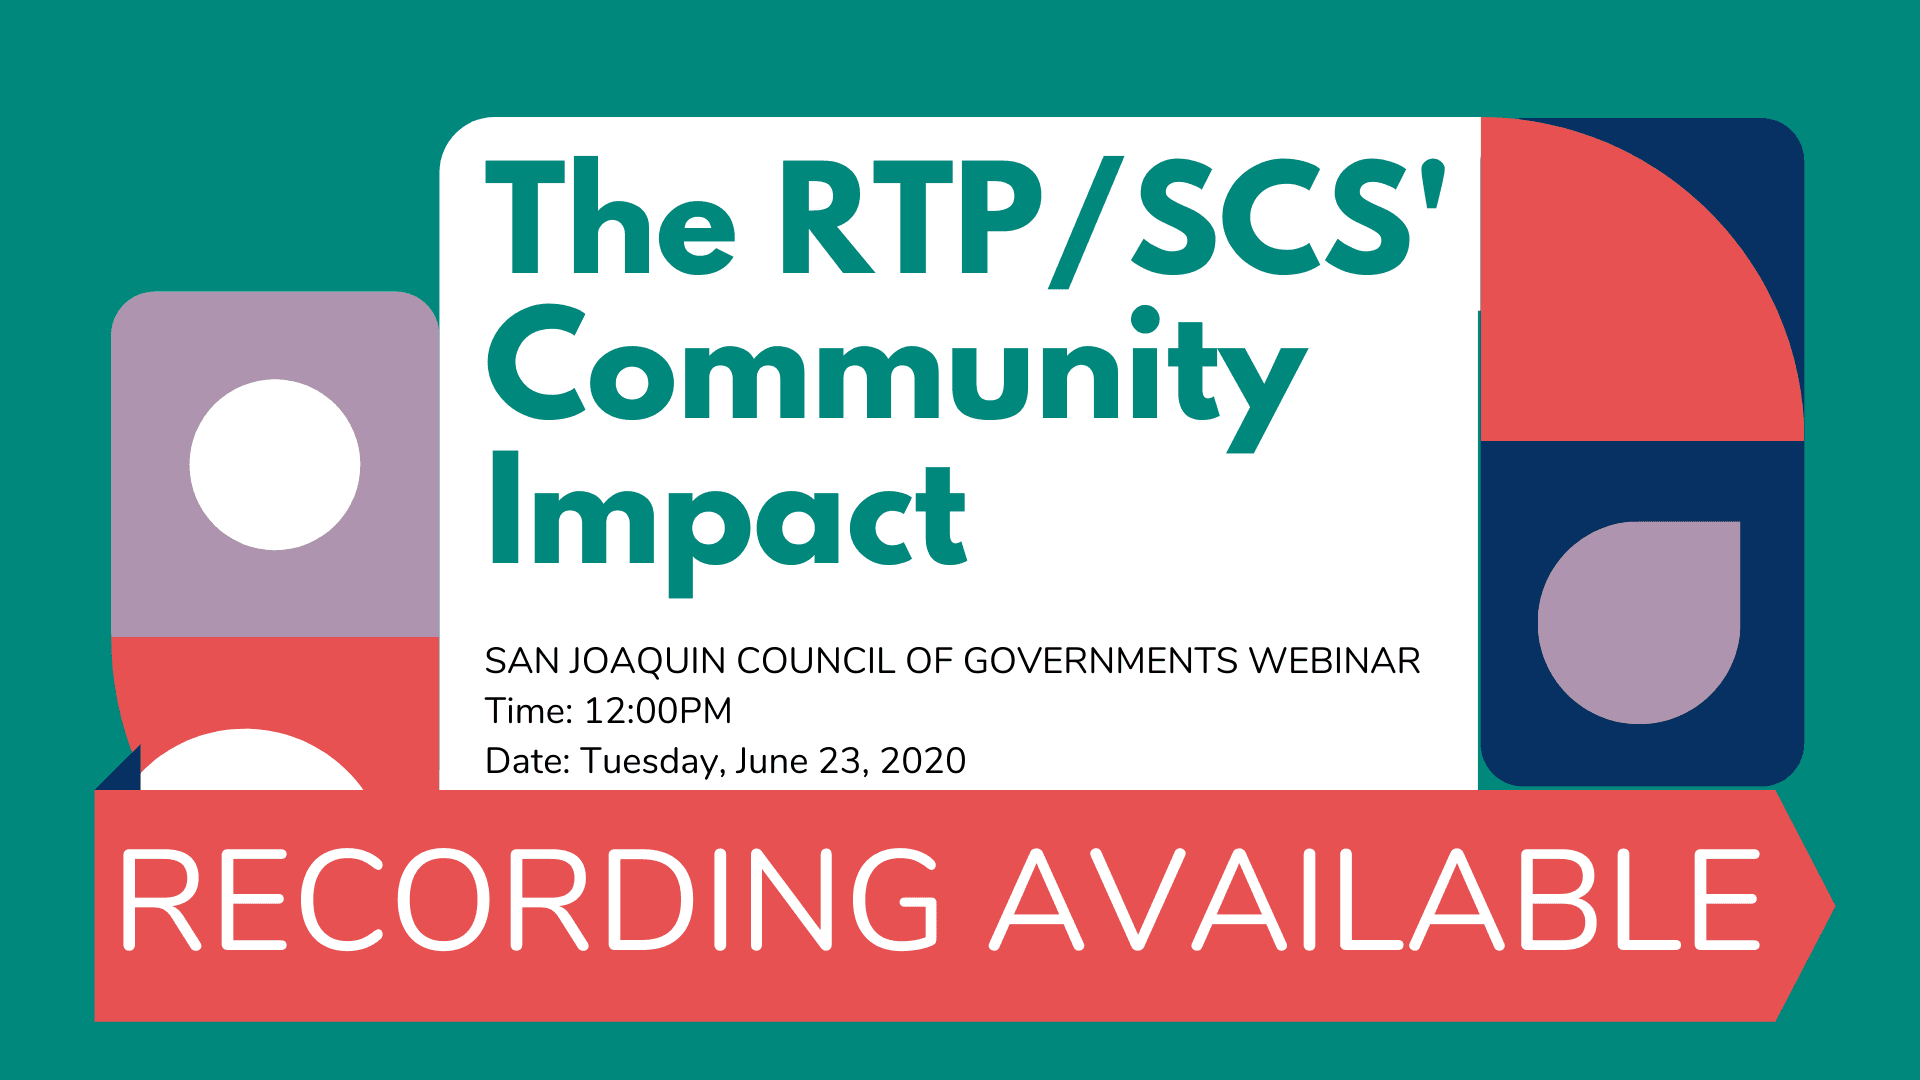 RTP/SCS Community Impact Webinar Recording Available